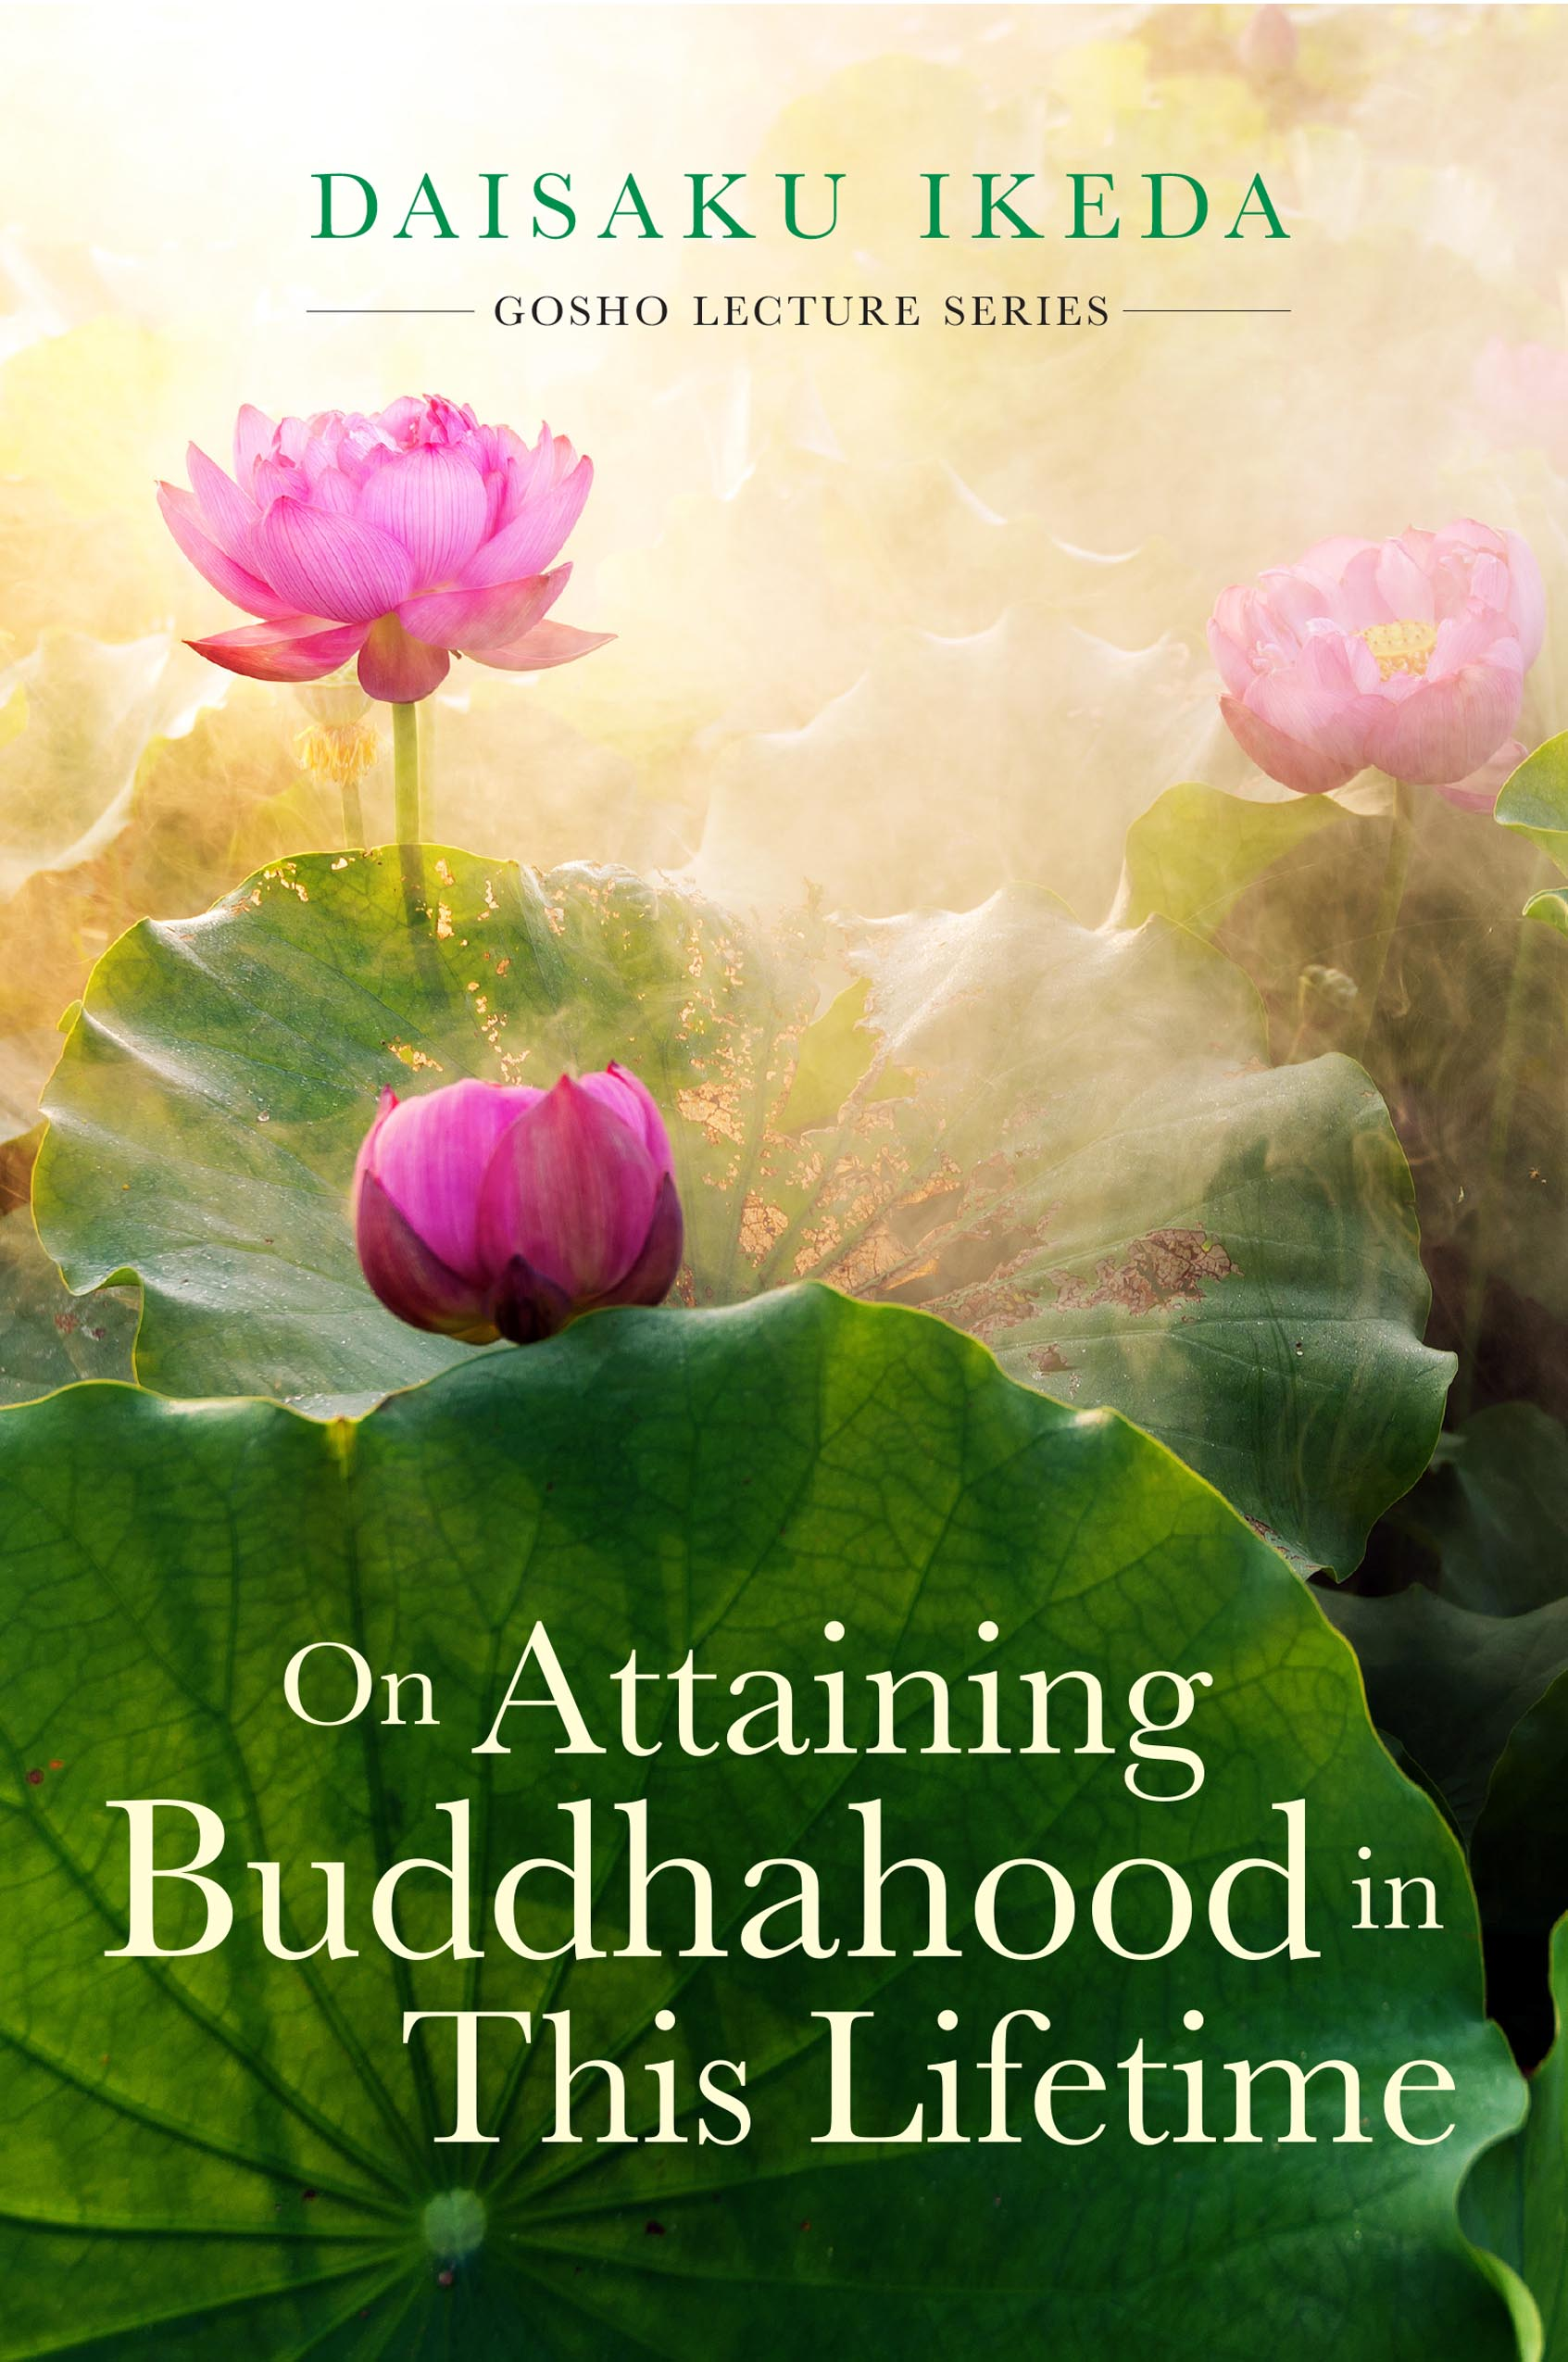 LECTURES ON 'ON ATTAINING BUDDHAHOOD IN THIS LIFETIME'